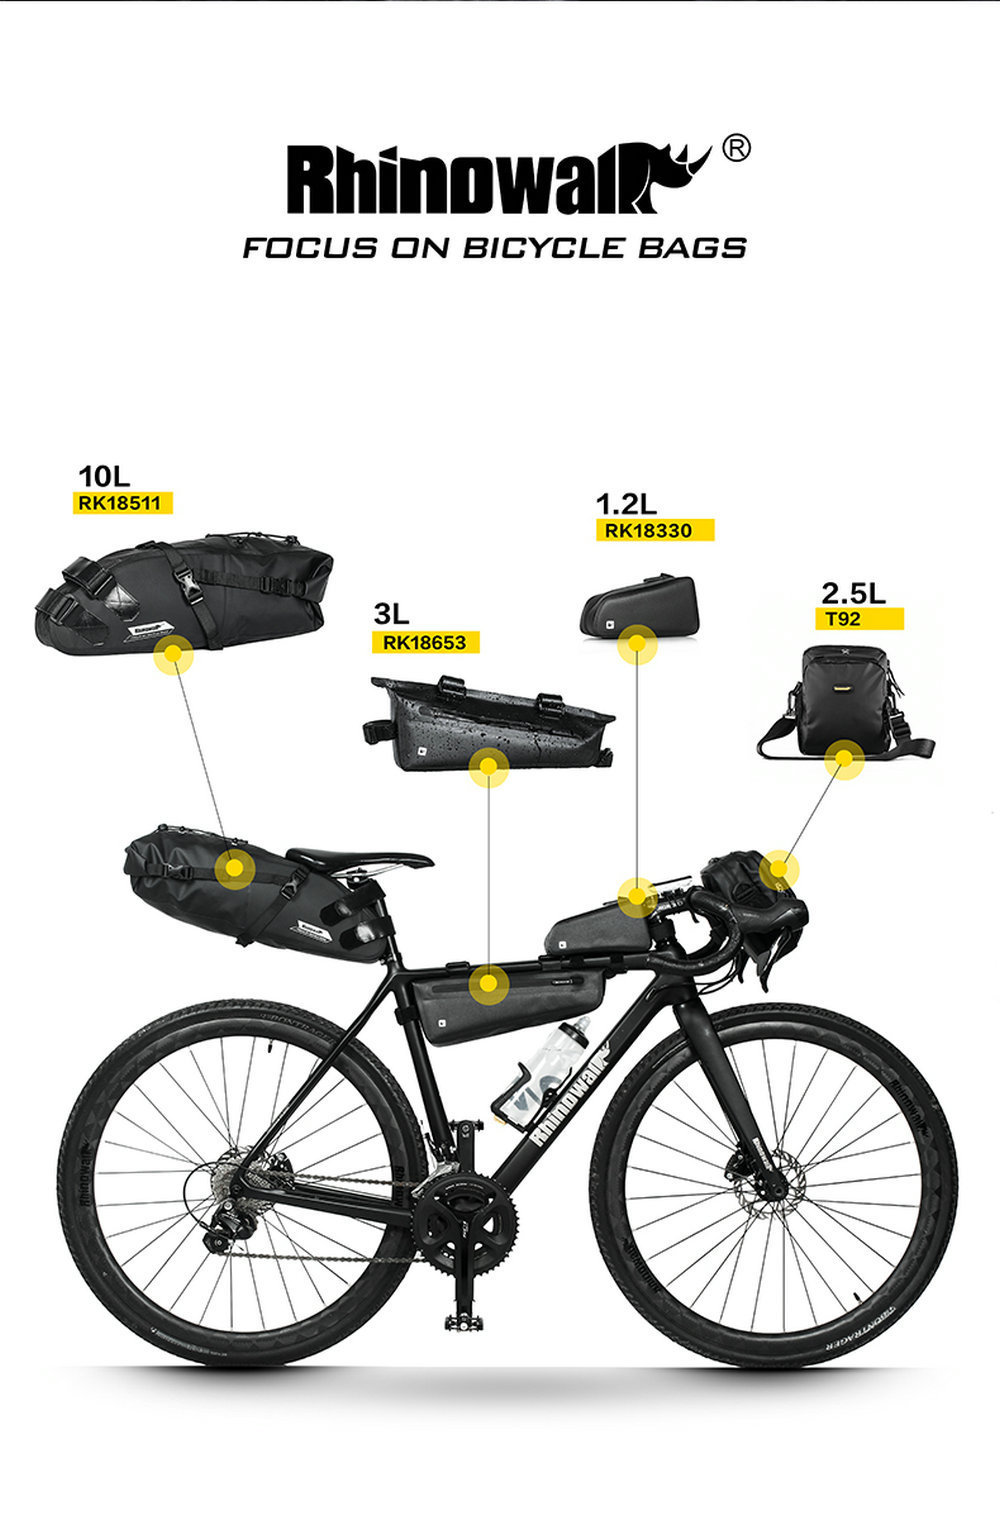 Rhinowalk Professional Road Bike Long Distance Cycling Bag Sets Waterproof Large Capacity for Bicycle Saddle Handlebar Tube Bags (2)